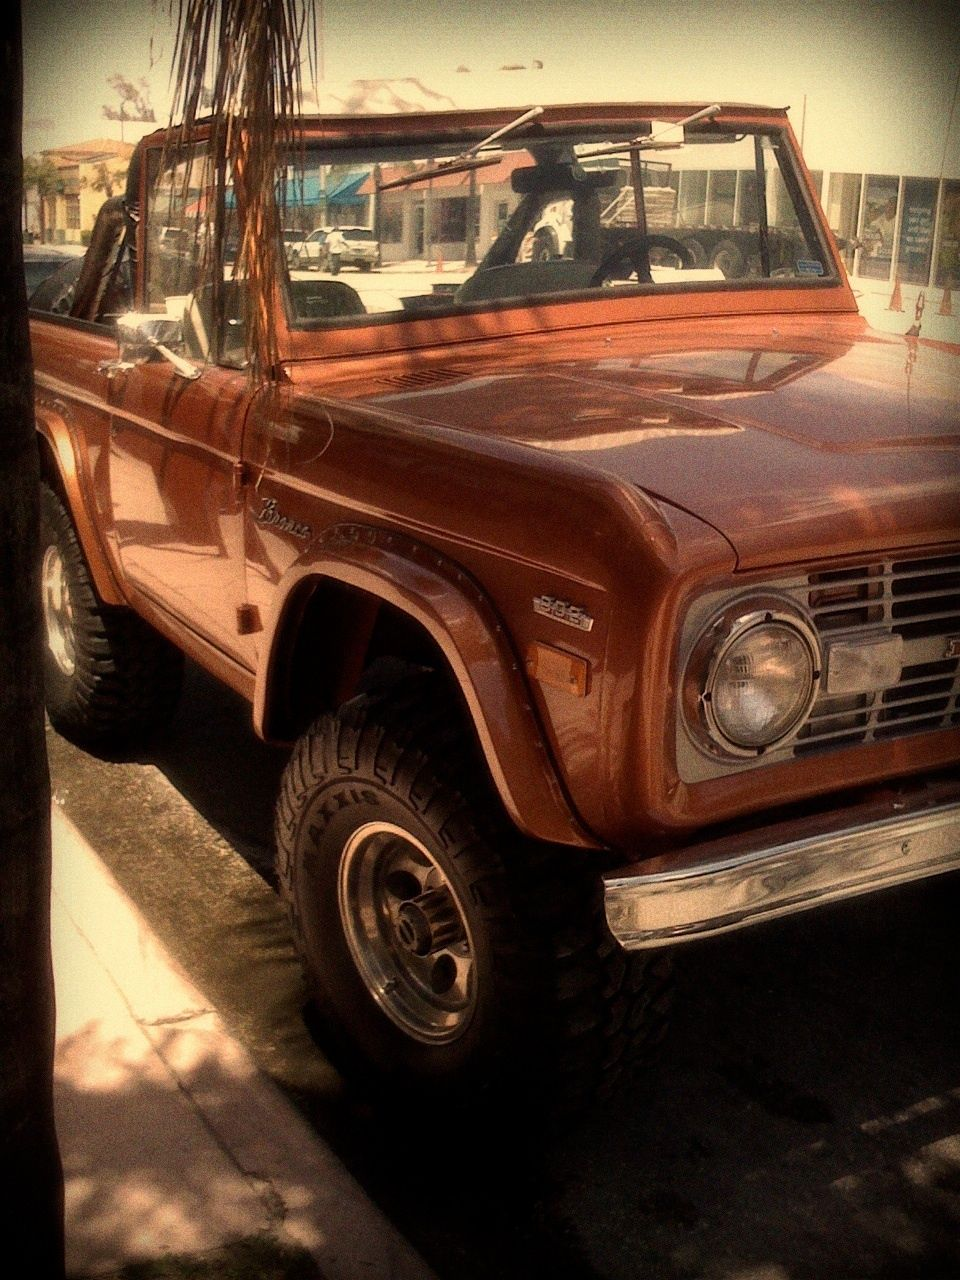 Pin by monica hill on Wes Old ford bronco, Classic ford